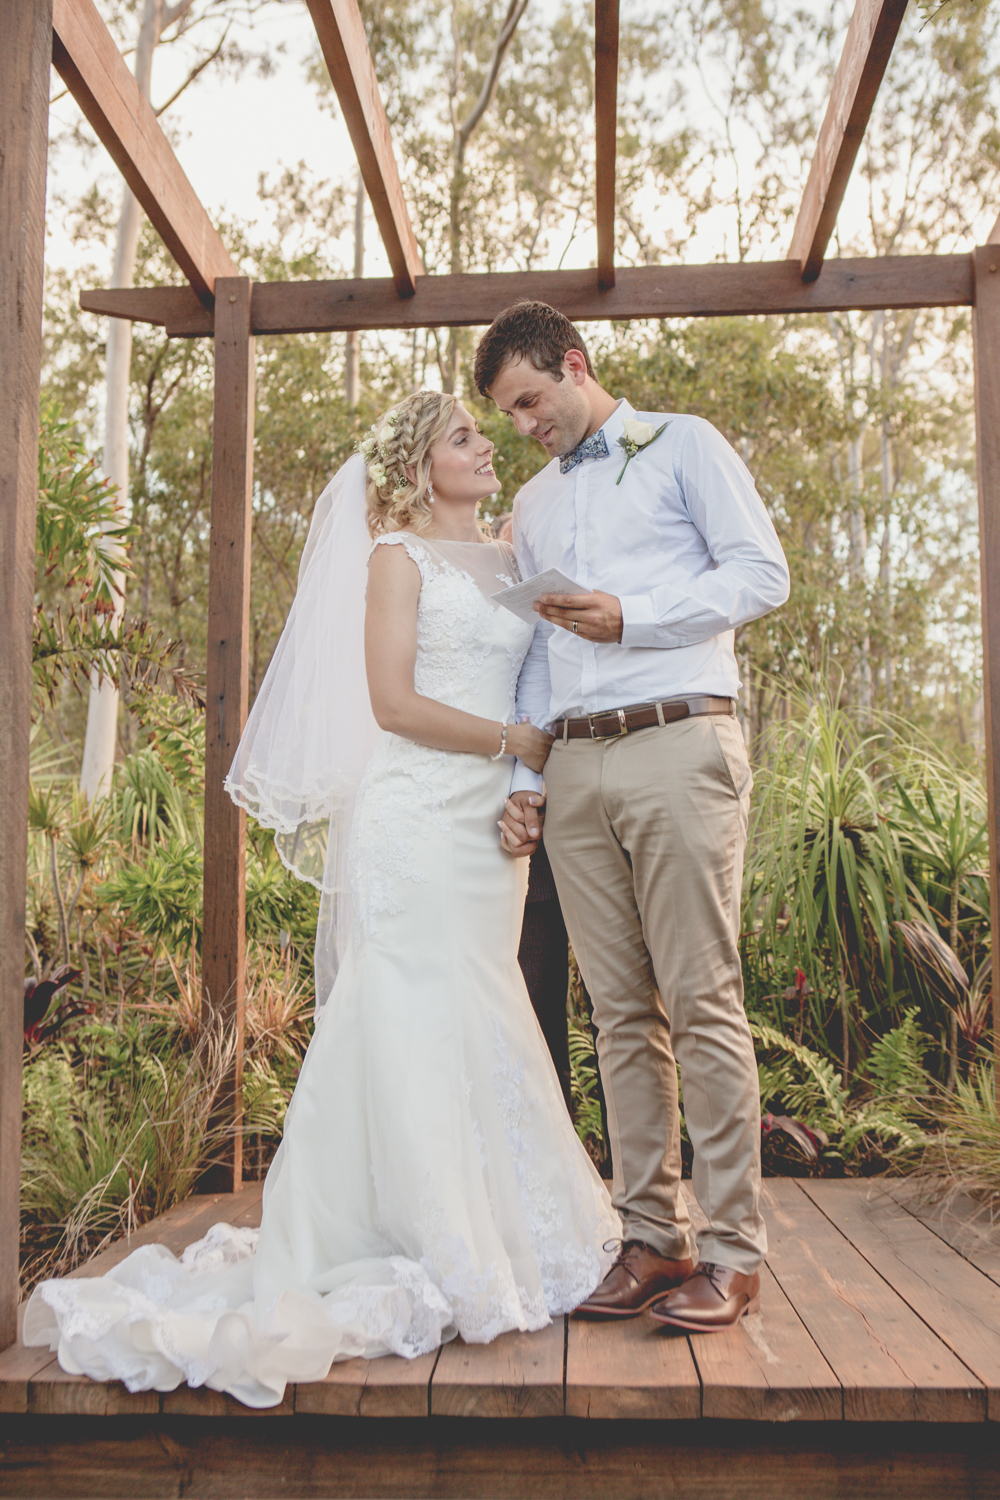 Brisbane_Wedding_Photographer-128.jpg